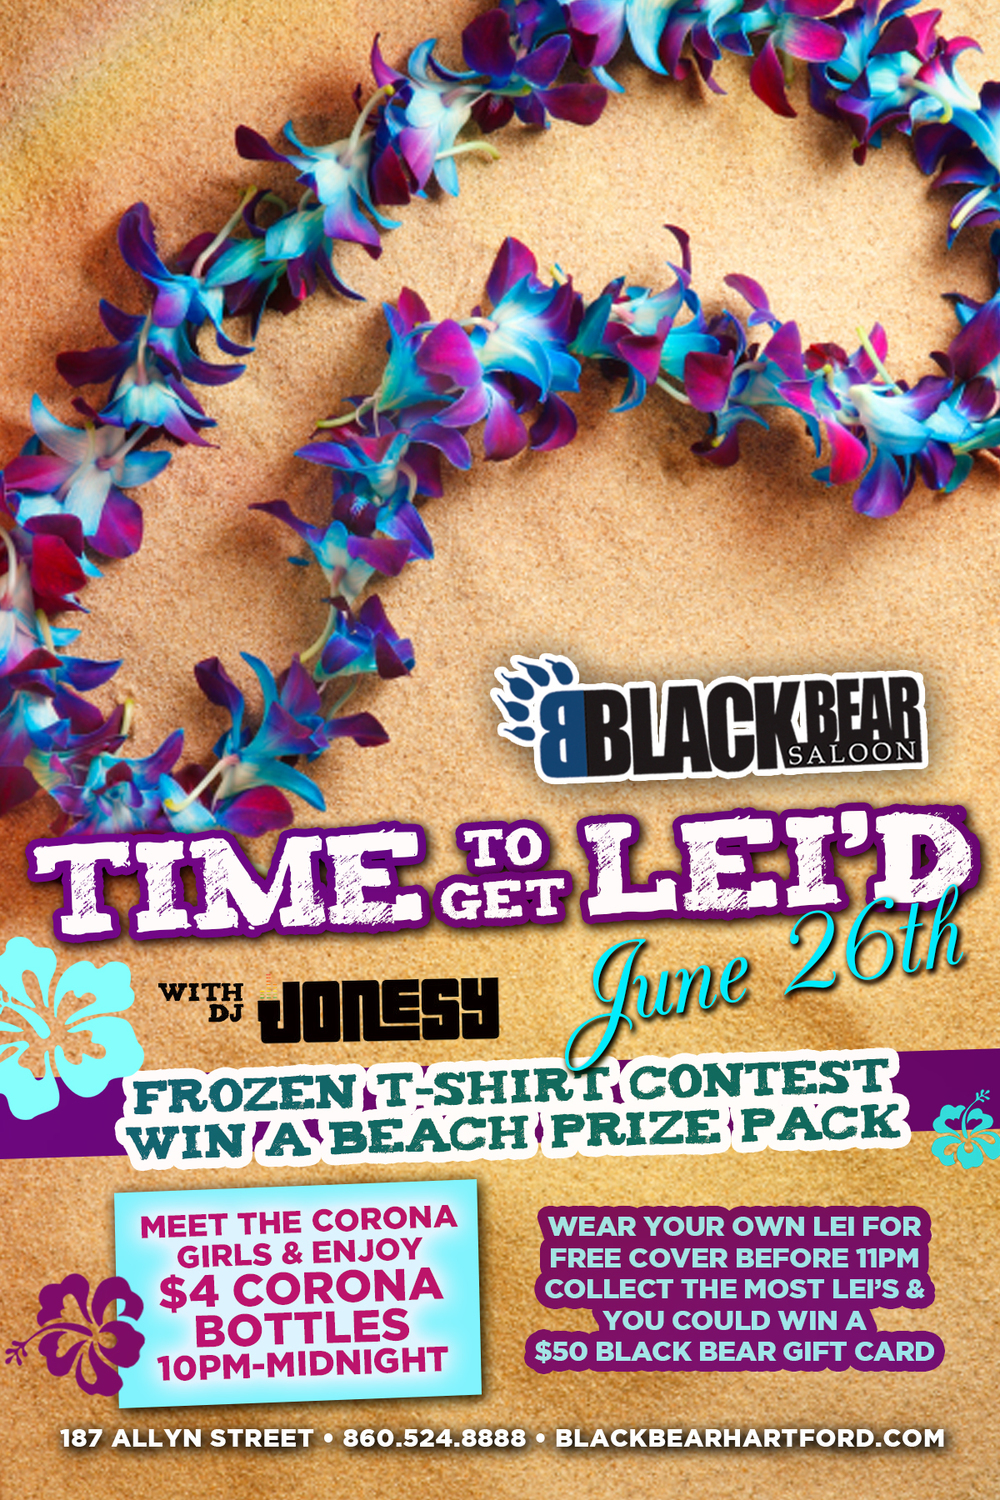 Friday June 26th join us at Black Bear Saloon for 'Time To Get Lei'd' w/ JONESY.  Music starts at 9:30pm.  Meet the Corona Girls & enjoy $4 Corona Bottles 10pm - Midnight.  Wear your own Lei for Free Cover before 11pm.  Collect the most Lei's throughout the night to win a $50 Black Bear Gift Card!